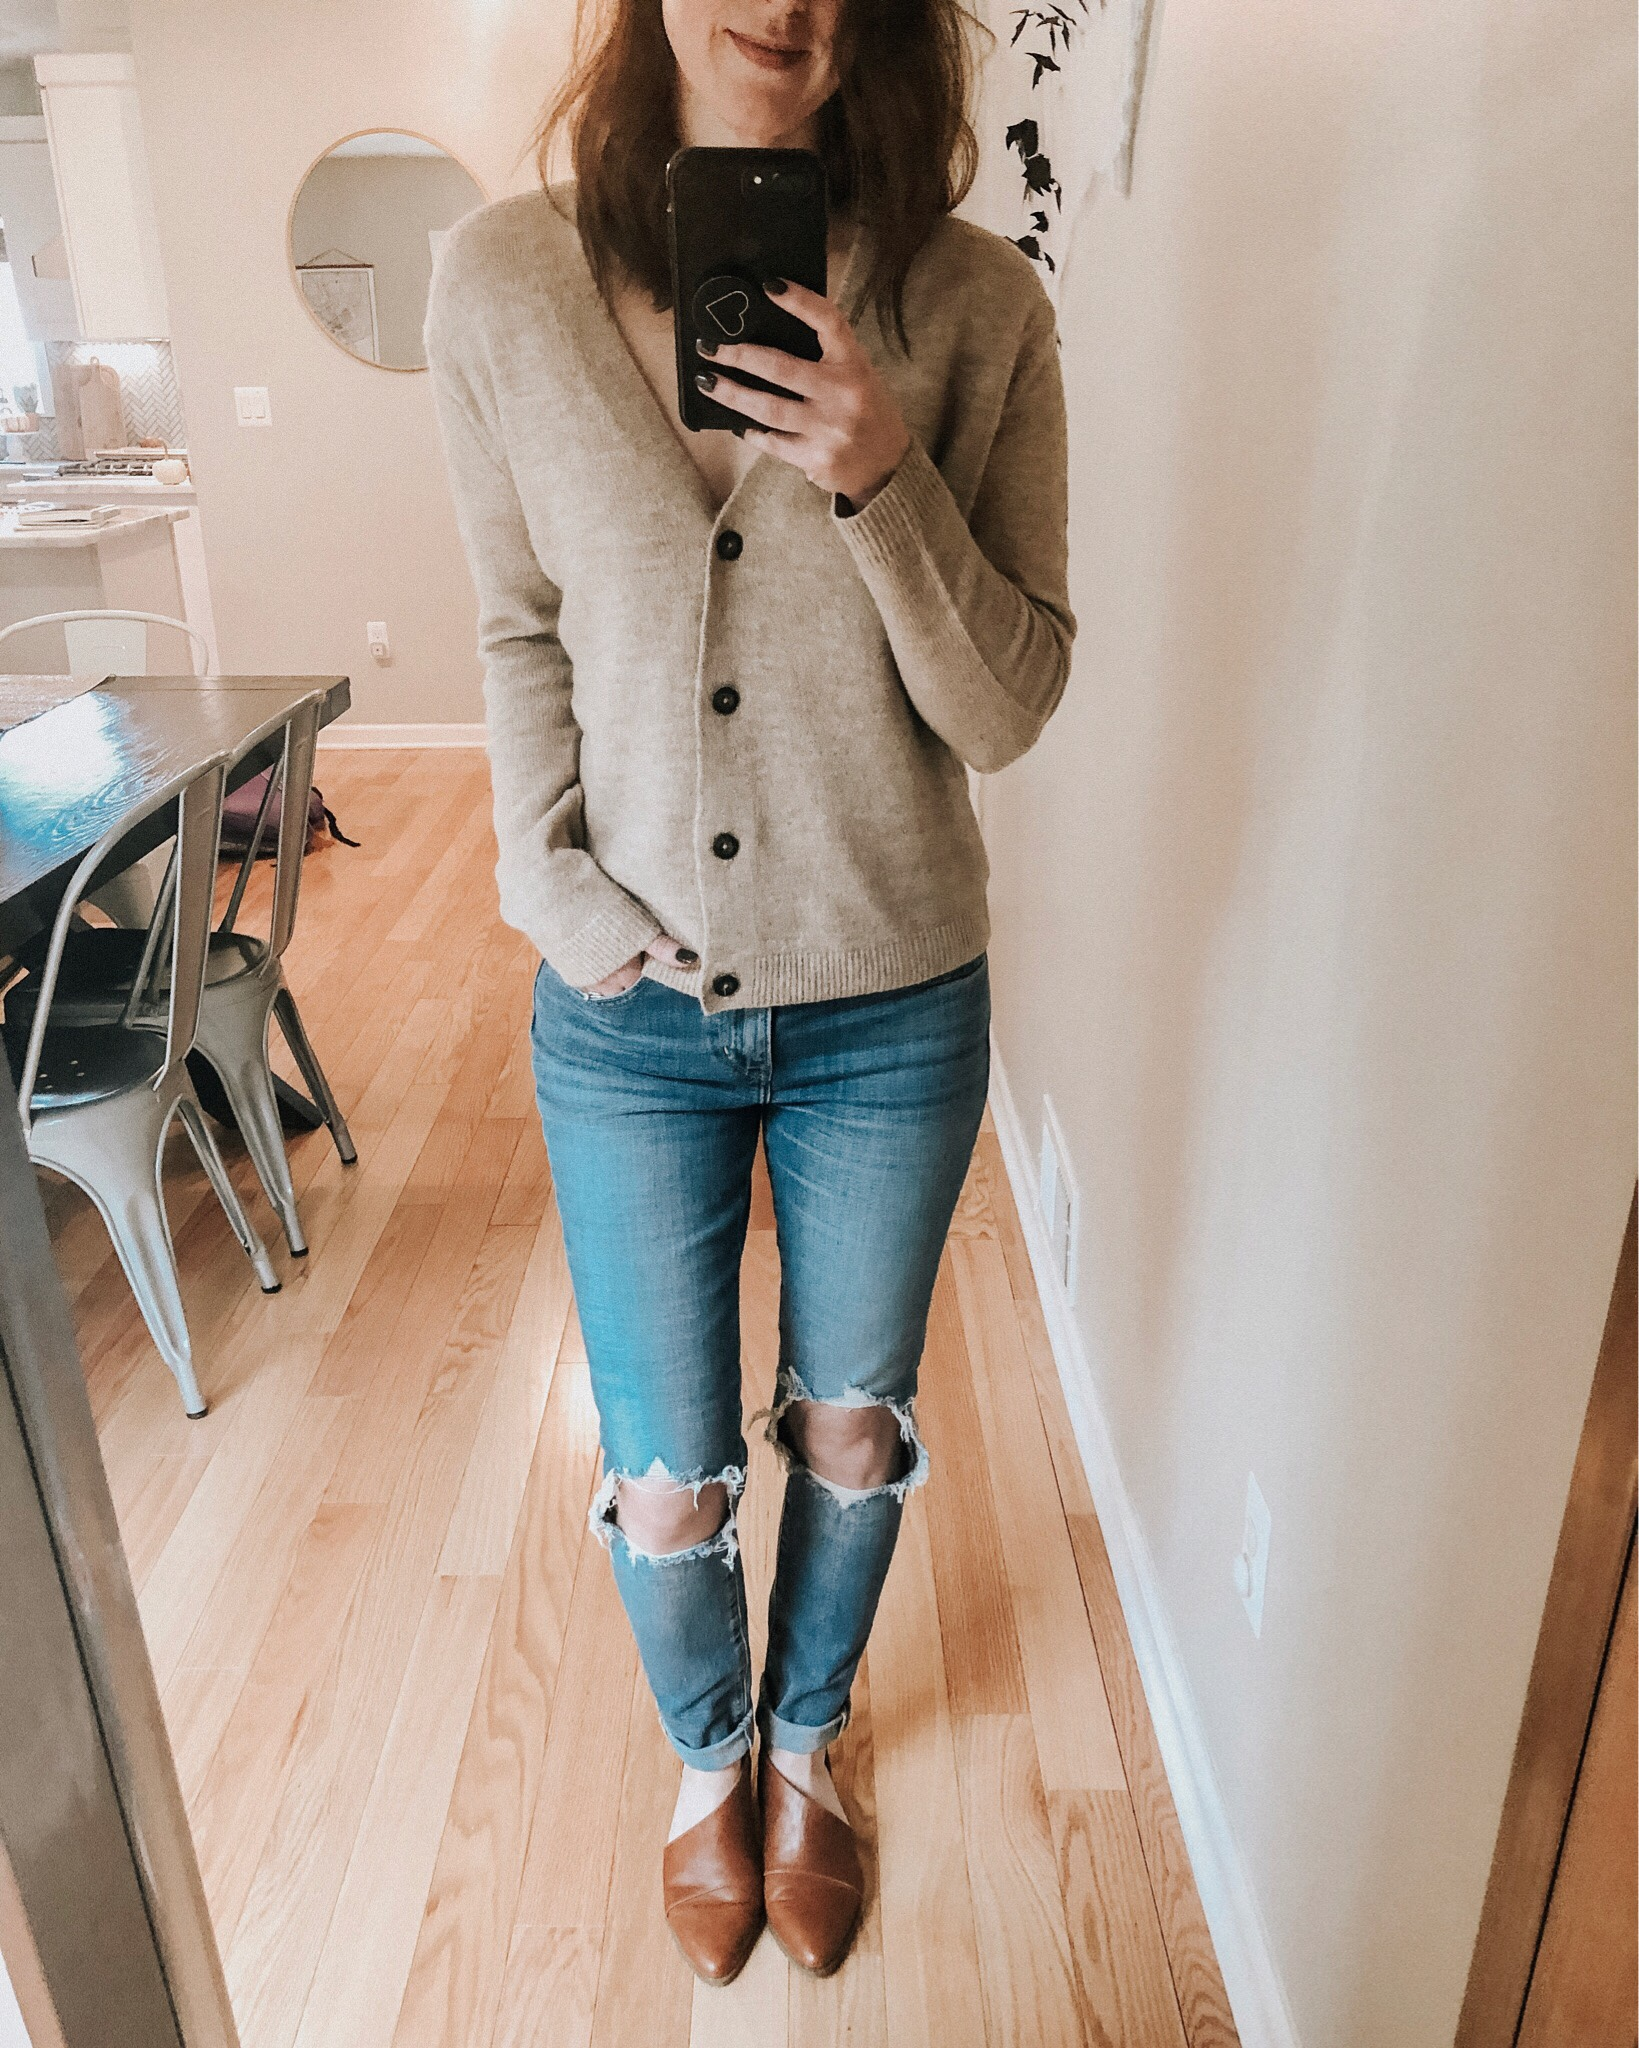 Winter sweater roundup | Daily Splendor Life and Style Blog | sweater dress #wintersweaters #fallsweater #turtlenecksweater #cozysweaters #amazon #oldnavy #oldnavysweater #cardigan #levis #mochnecksweater #darkhair #winterfashion #womensclothes #holidayoutfit #cozyclothes